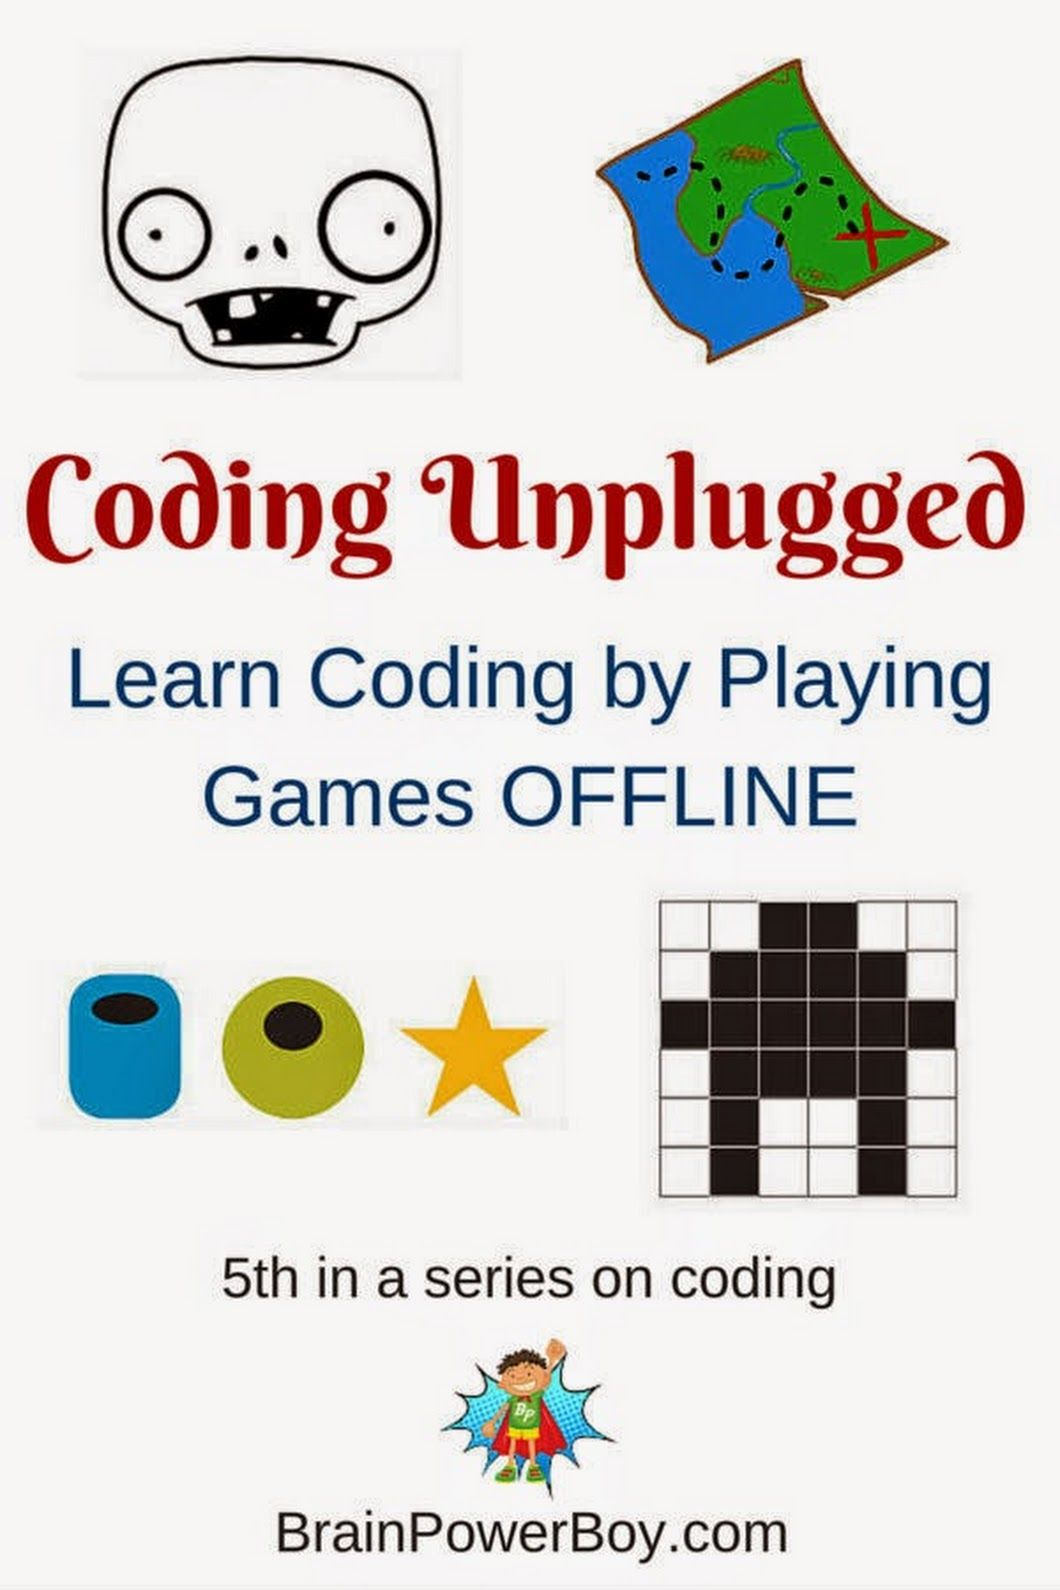 Coding Unplugged! Do you want your kids to learn coding